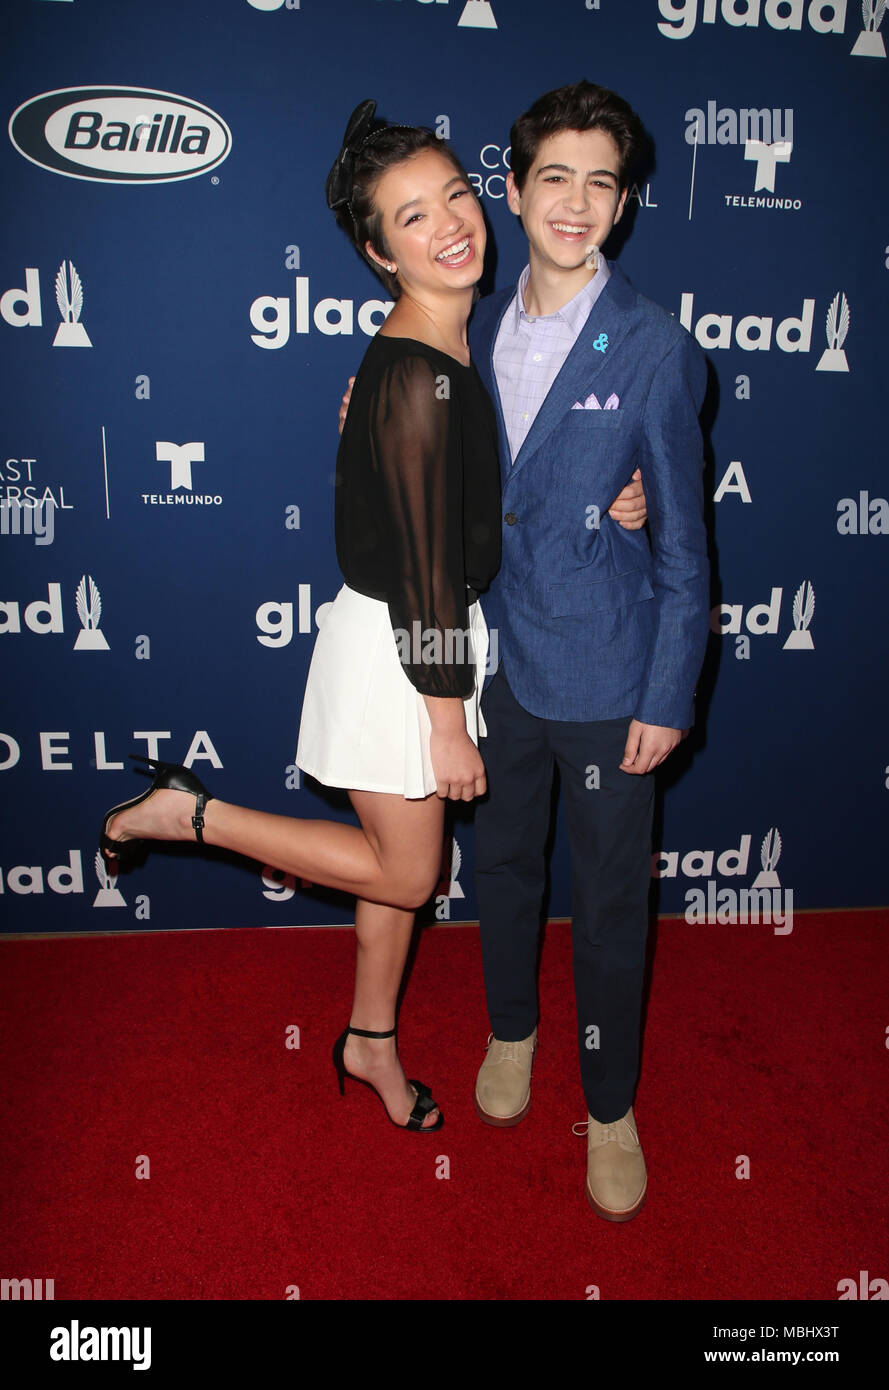 Beverly Hills, Ca. 11th Apr, 2018. Peyton Elizabeth Lee and Joshua Rush at the GLAAD Media Awards Rising Stars Luncheon at the The Beverly Hilton in Beverly Hills, California on April 11, 2018. Credit: Faye Sadou/Media Punch/Alamy Live News - Stock Image